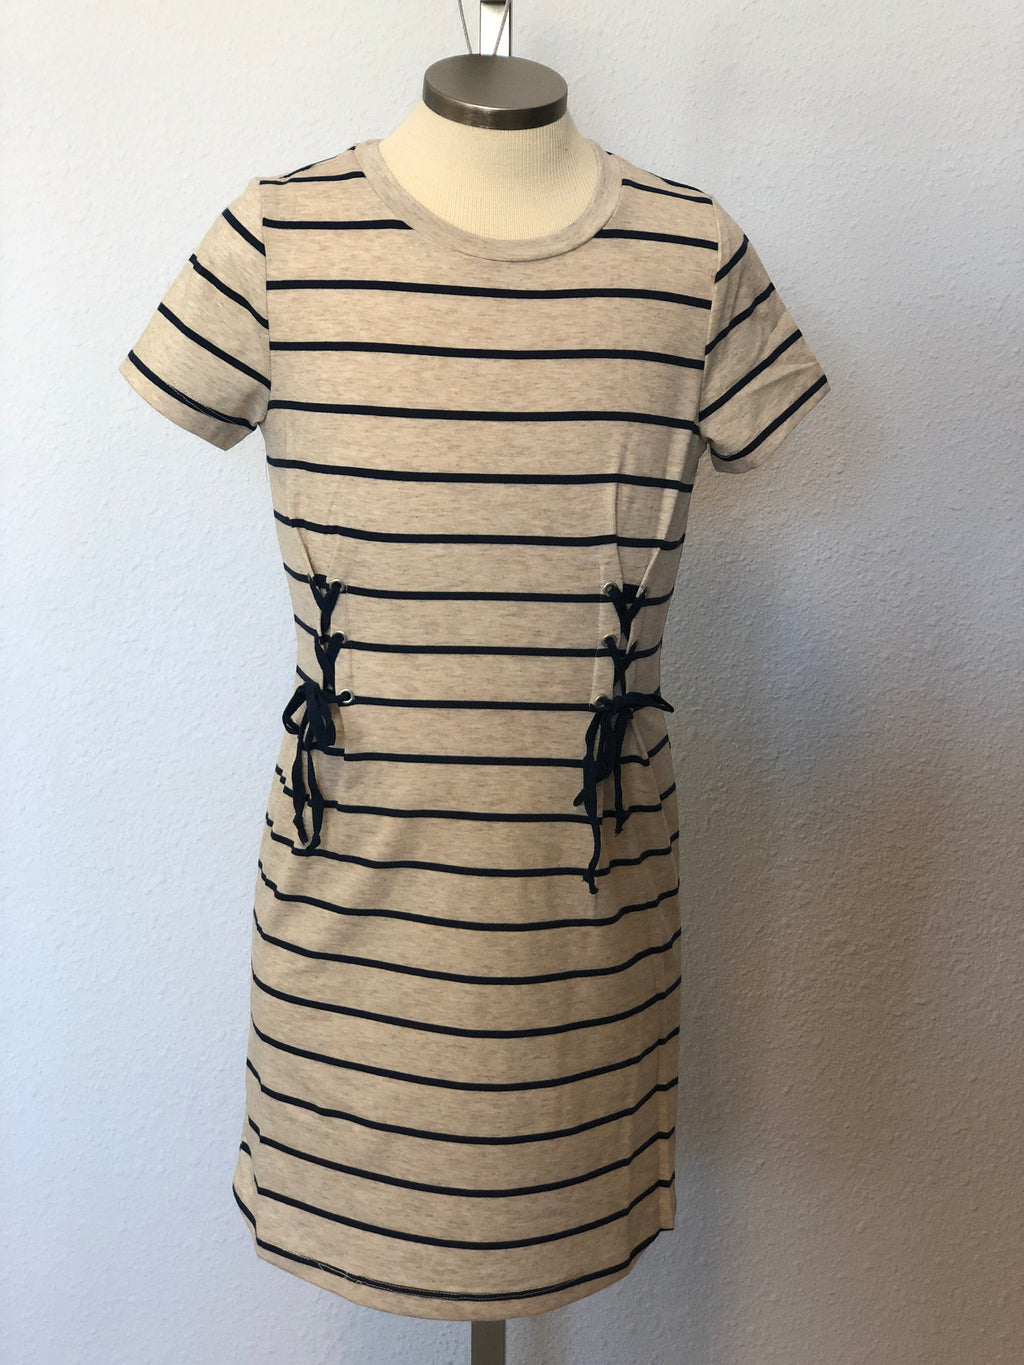 K STRIPED T-SHIRT DRESS